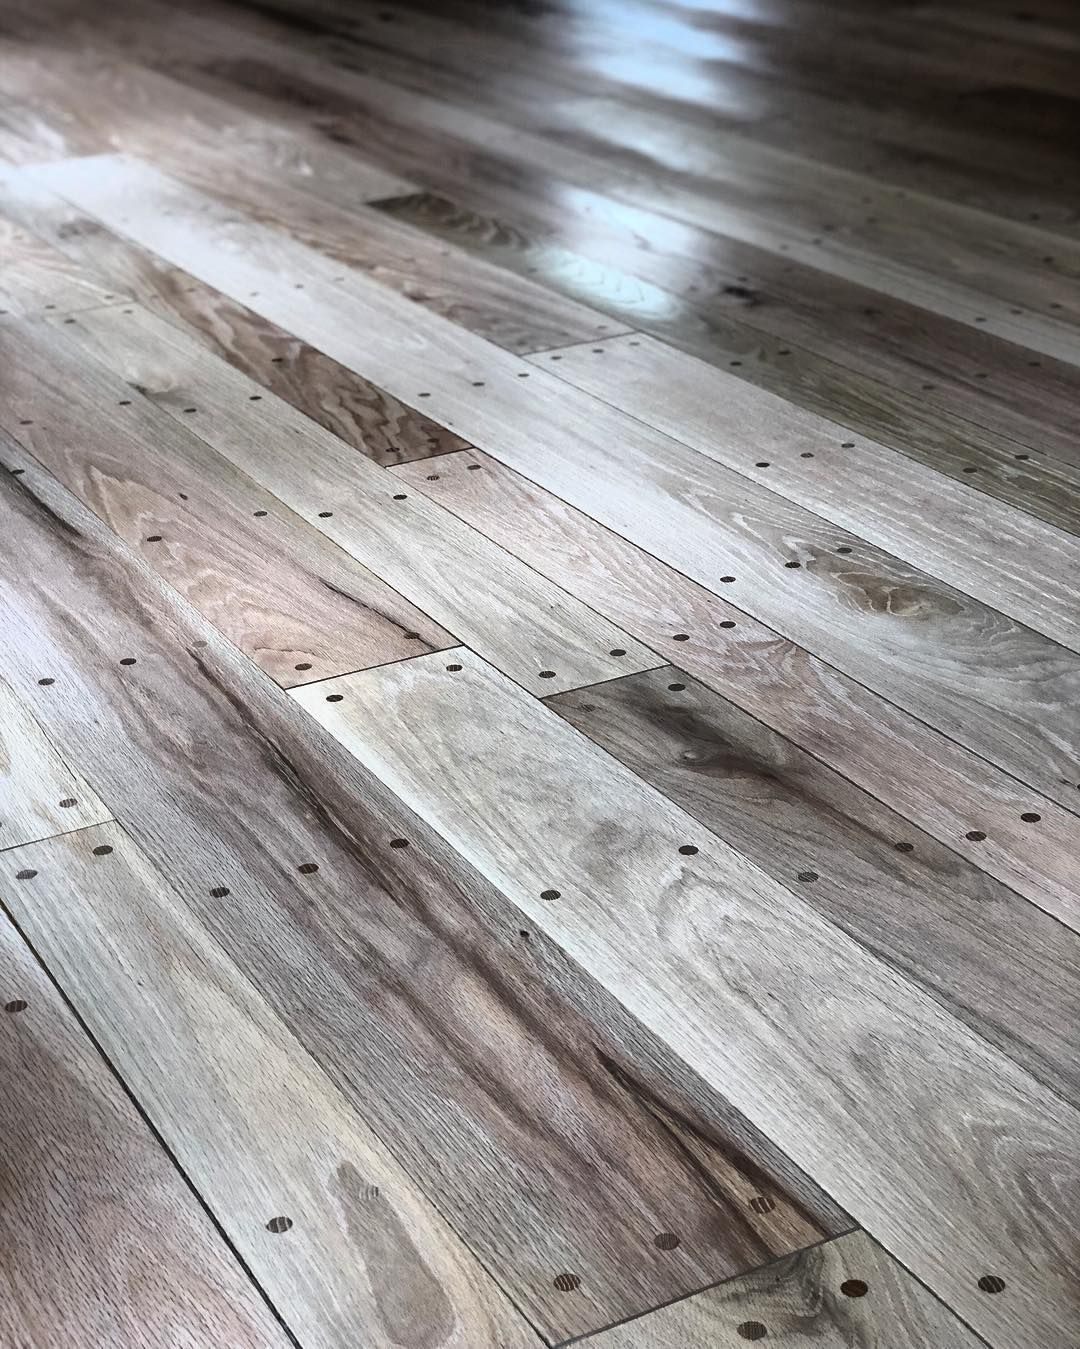 This Floor Is Crafty Like Ice Is Cold Your Finish Is Only As Good As Your Sanding Homeaccents Remodel Flooring Custom Floor Sanding